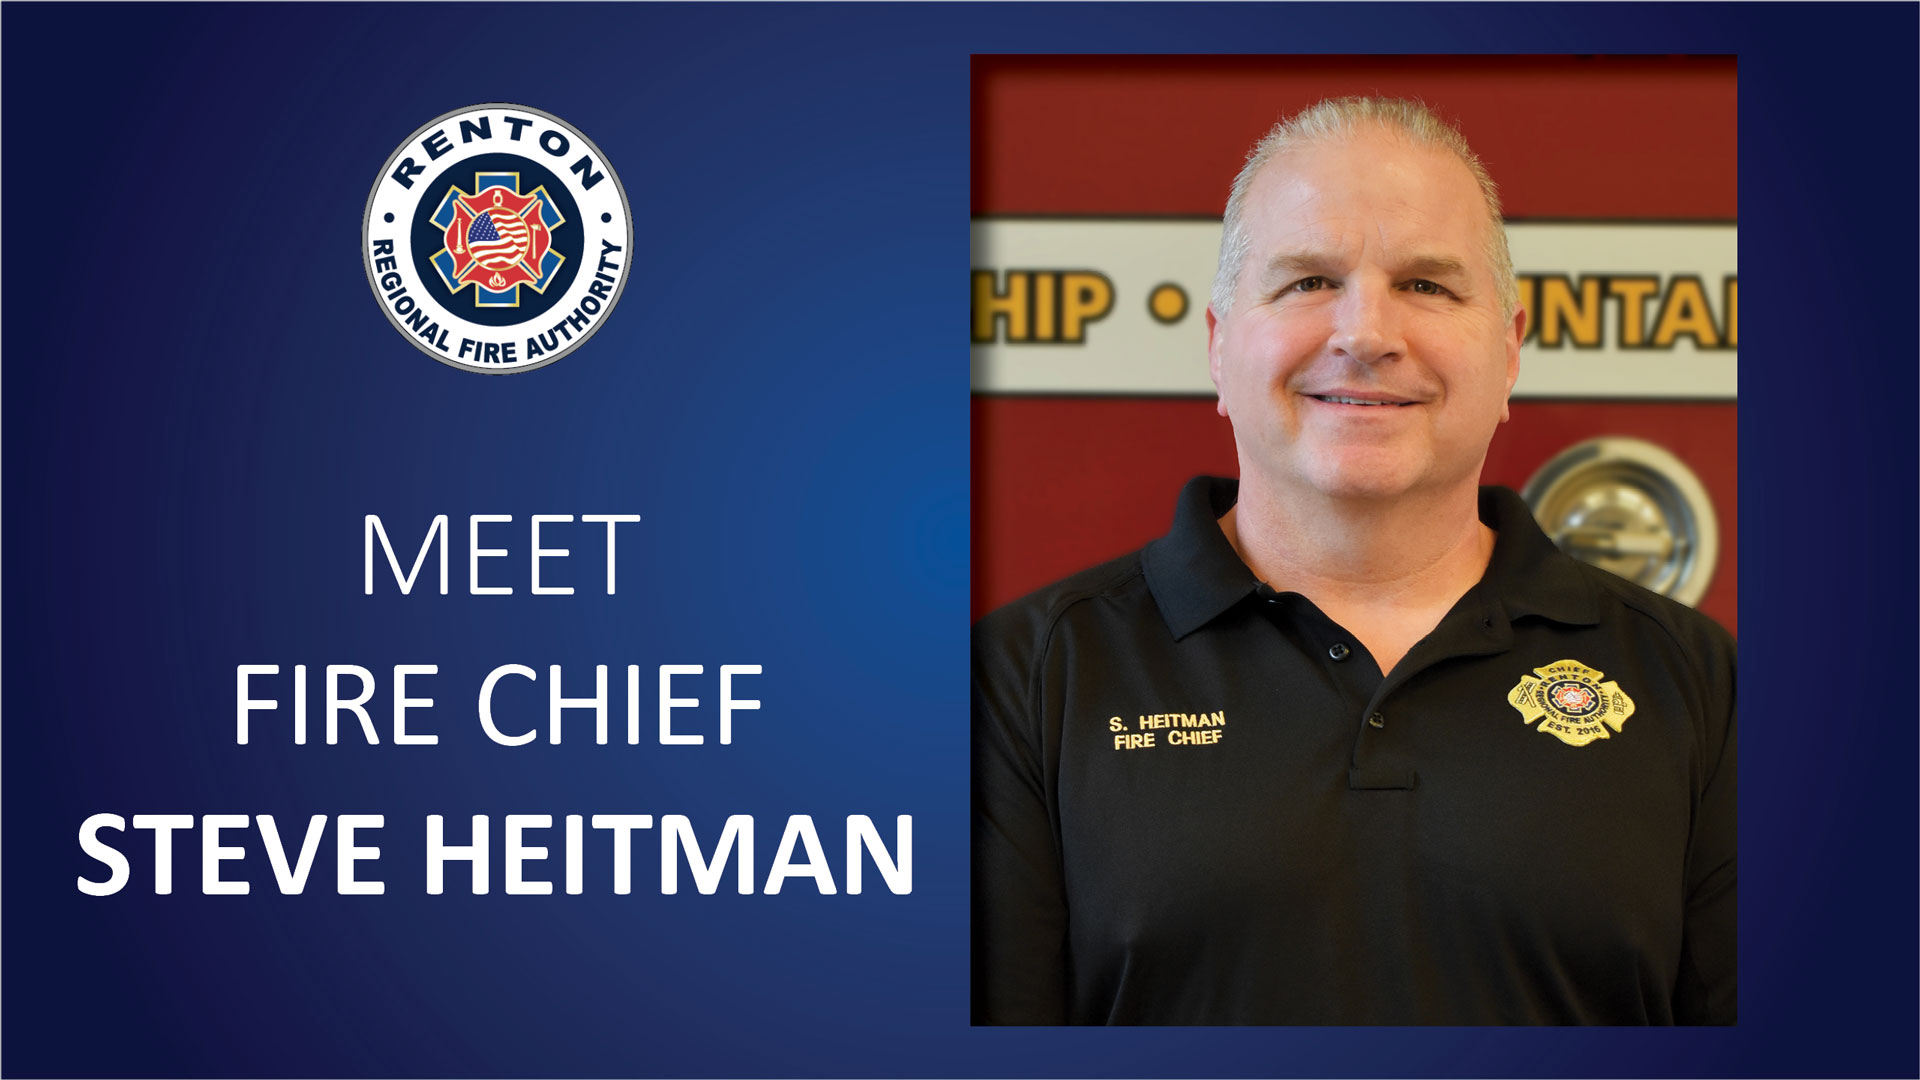 Meet Fire Chief Steve Heitman